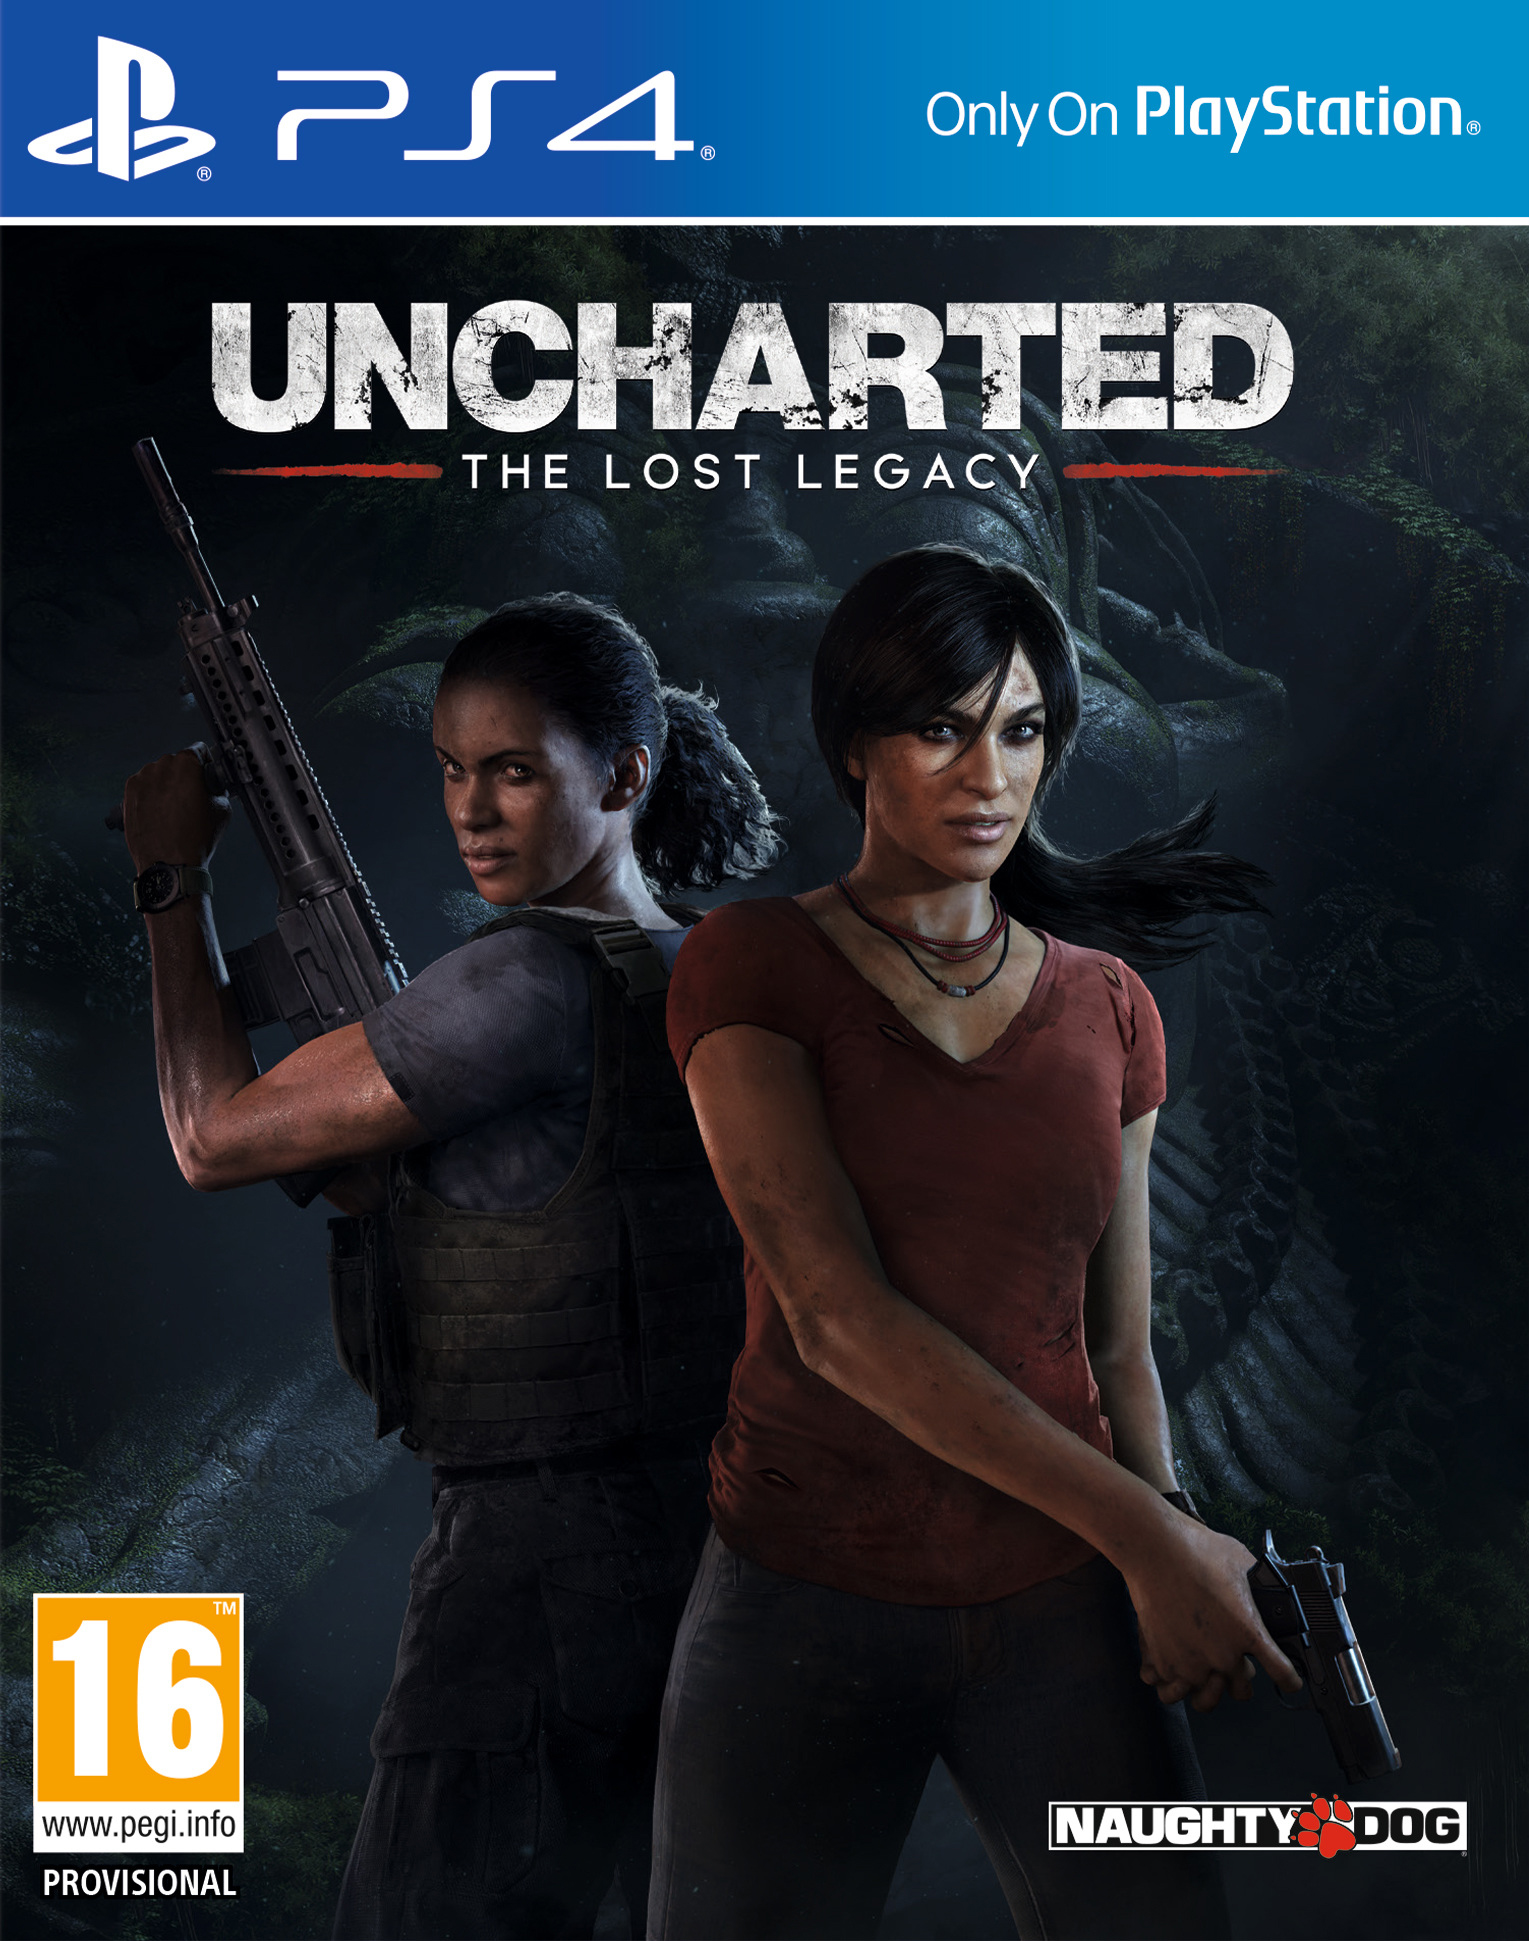 Uncharted: The Lost Legacy / Uncharted: Утраченное Наследие [PS4 Exclusive] 5.05 / 6.72 / 7.02 [EUR] (2017) [Русский/Английский] (v1.08)